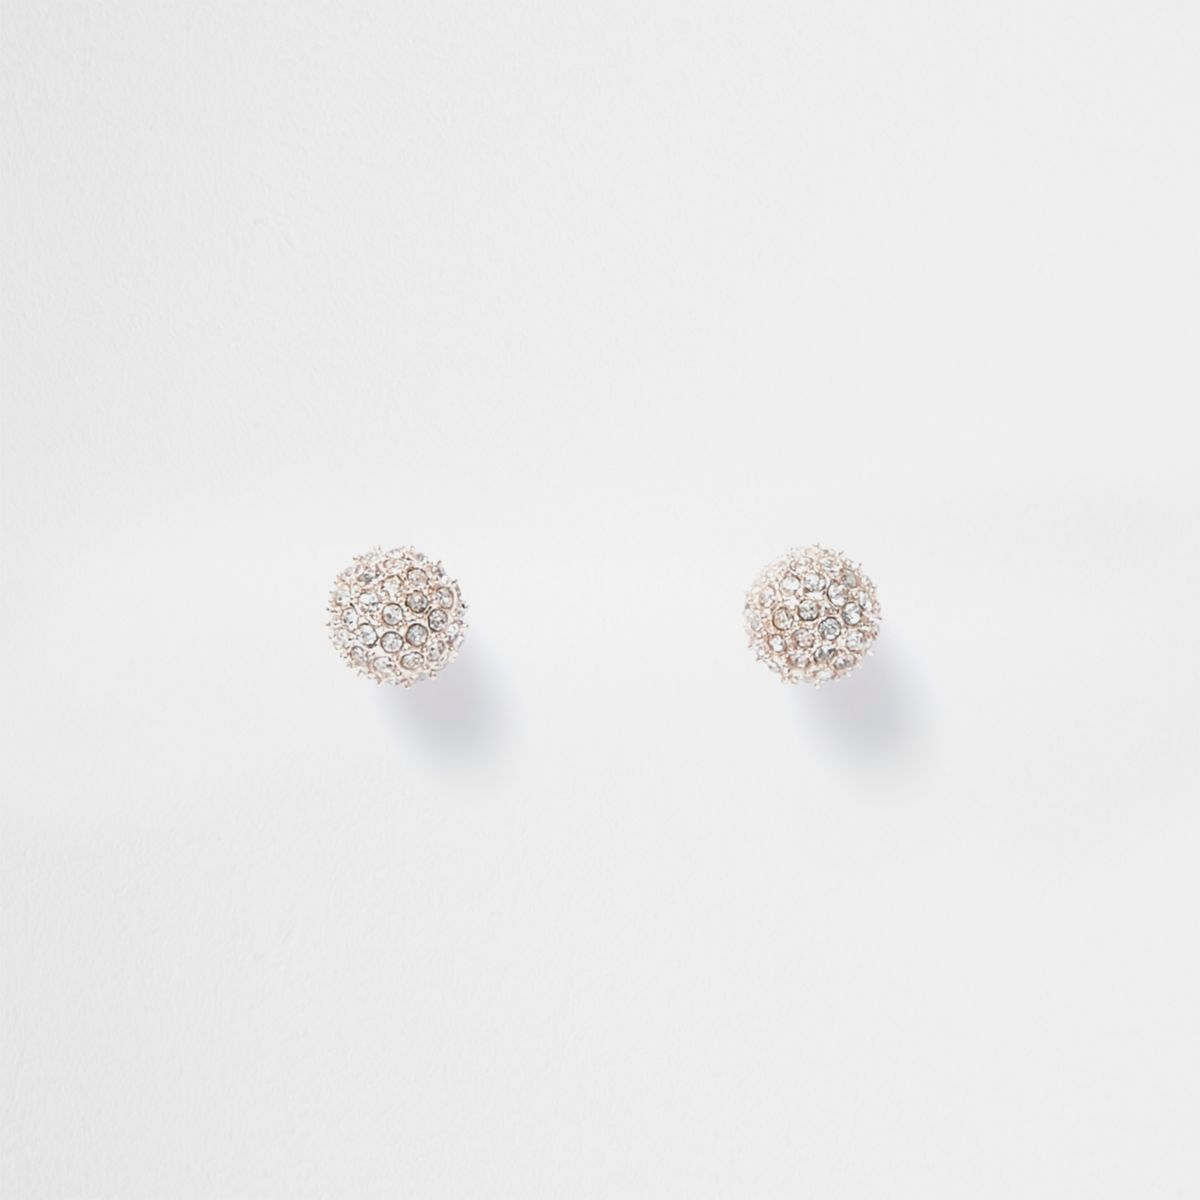 Rose gold tone diamante ball stud earrings